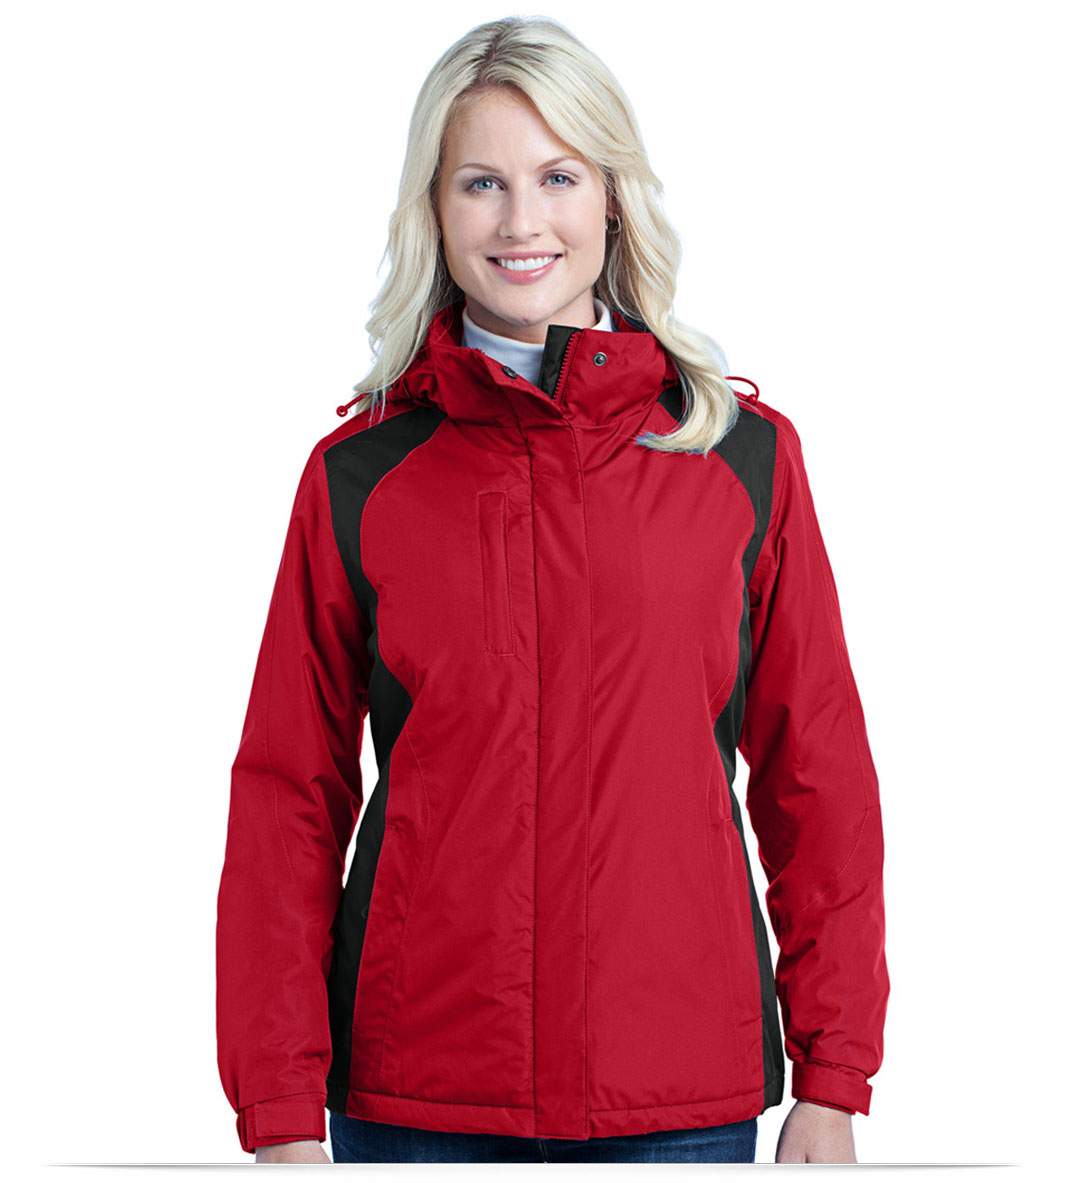 Embroidered Ladies Barrier Jacket